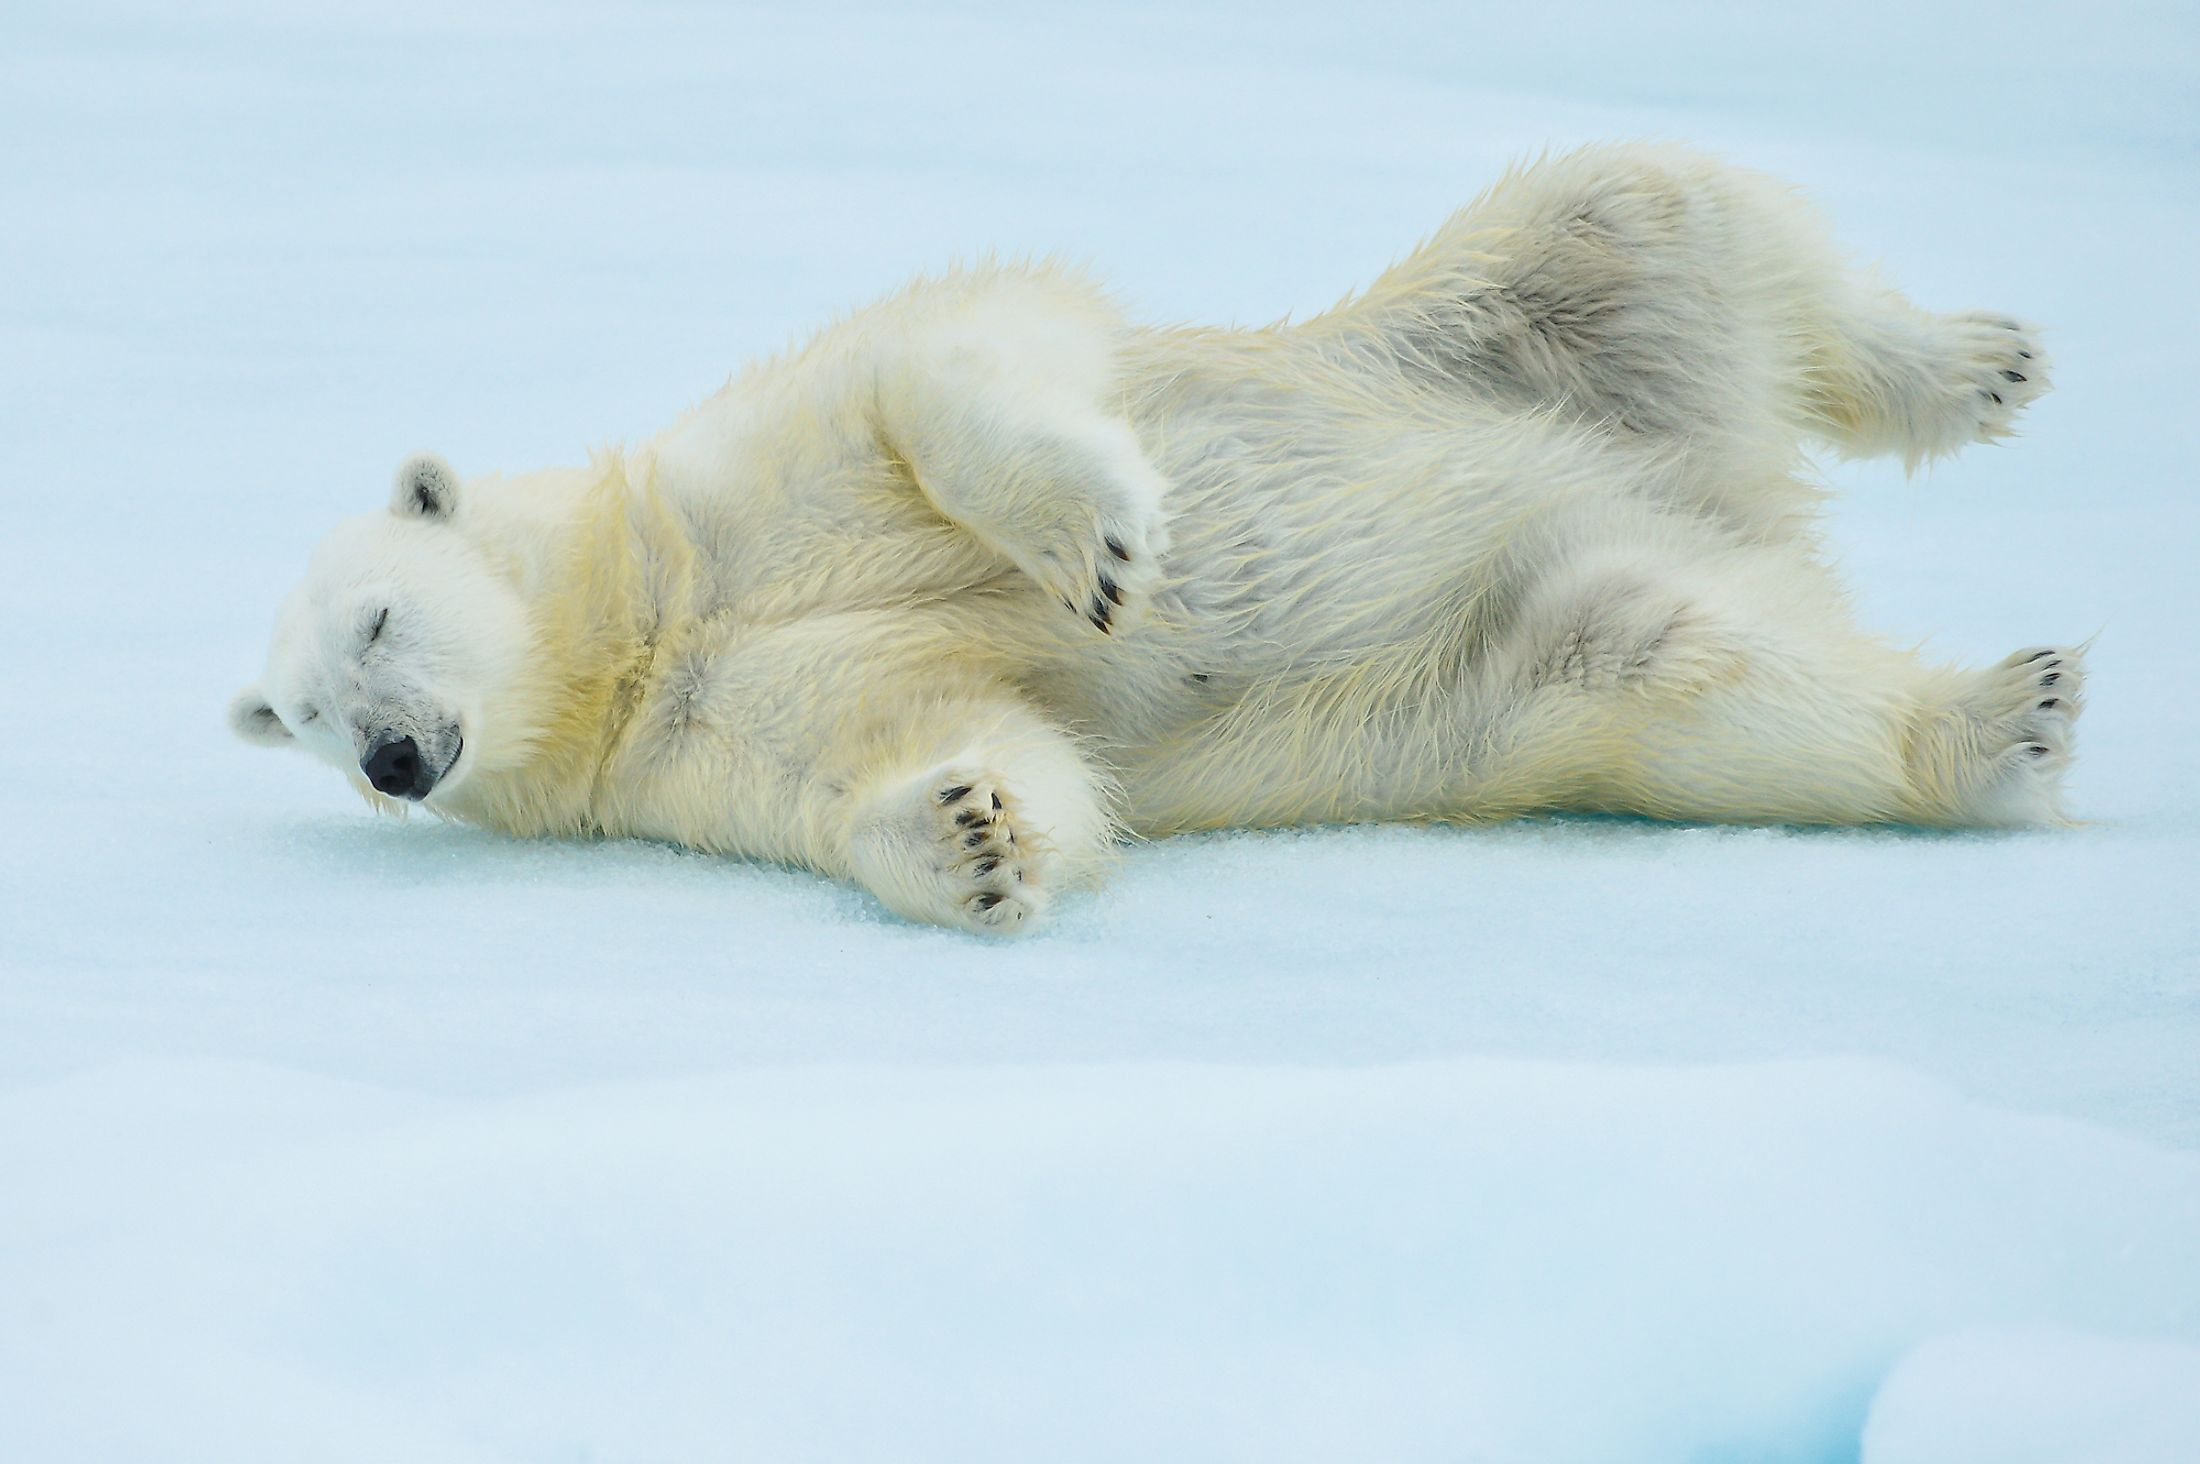 A polar bear rolling in the Arctic snow after a swim. Image credit: FloridaStock/Shutterstock.com